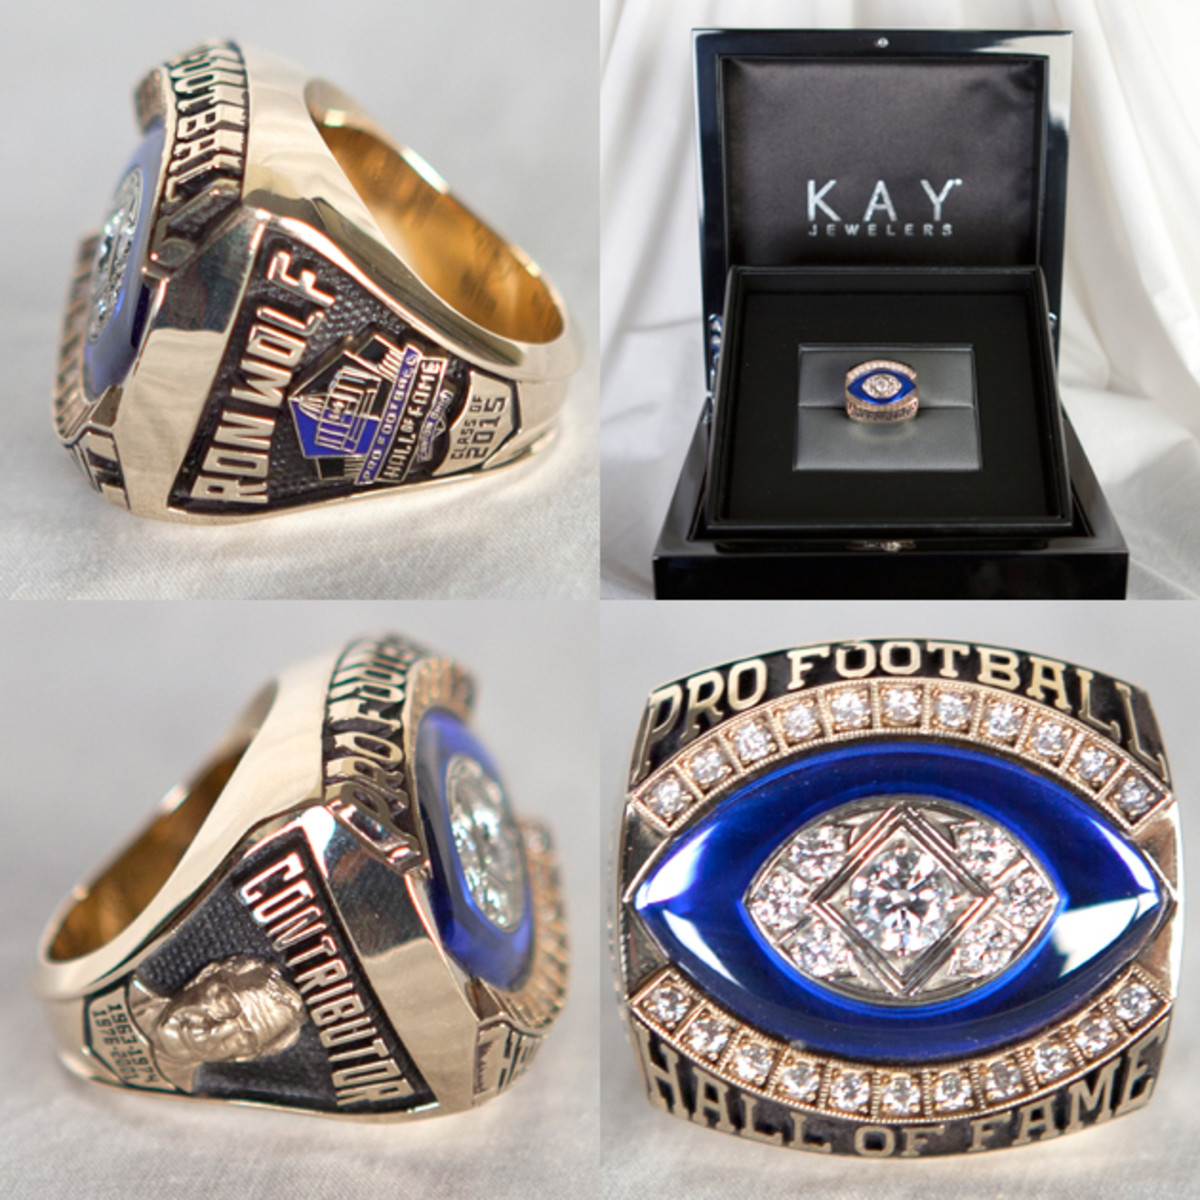 Kay® Jewelers redesigned the Hall of Fame Ring of Excellence in 2013. The Hall of Fame Ring of Excellence is one of three iconic symbols that represent the elite status of being a member of the Pro Football Hall of Fame.